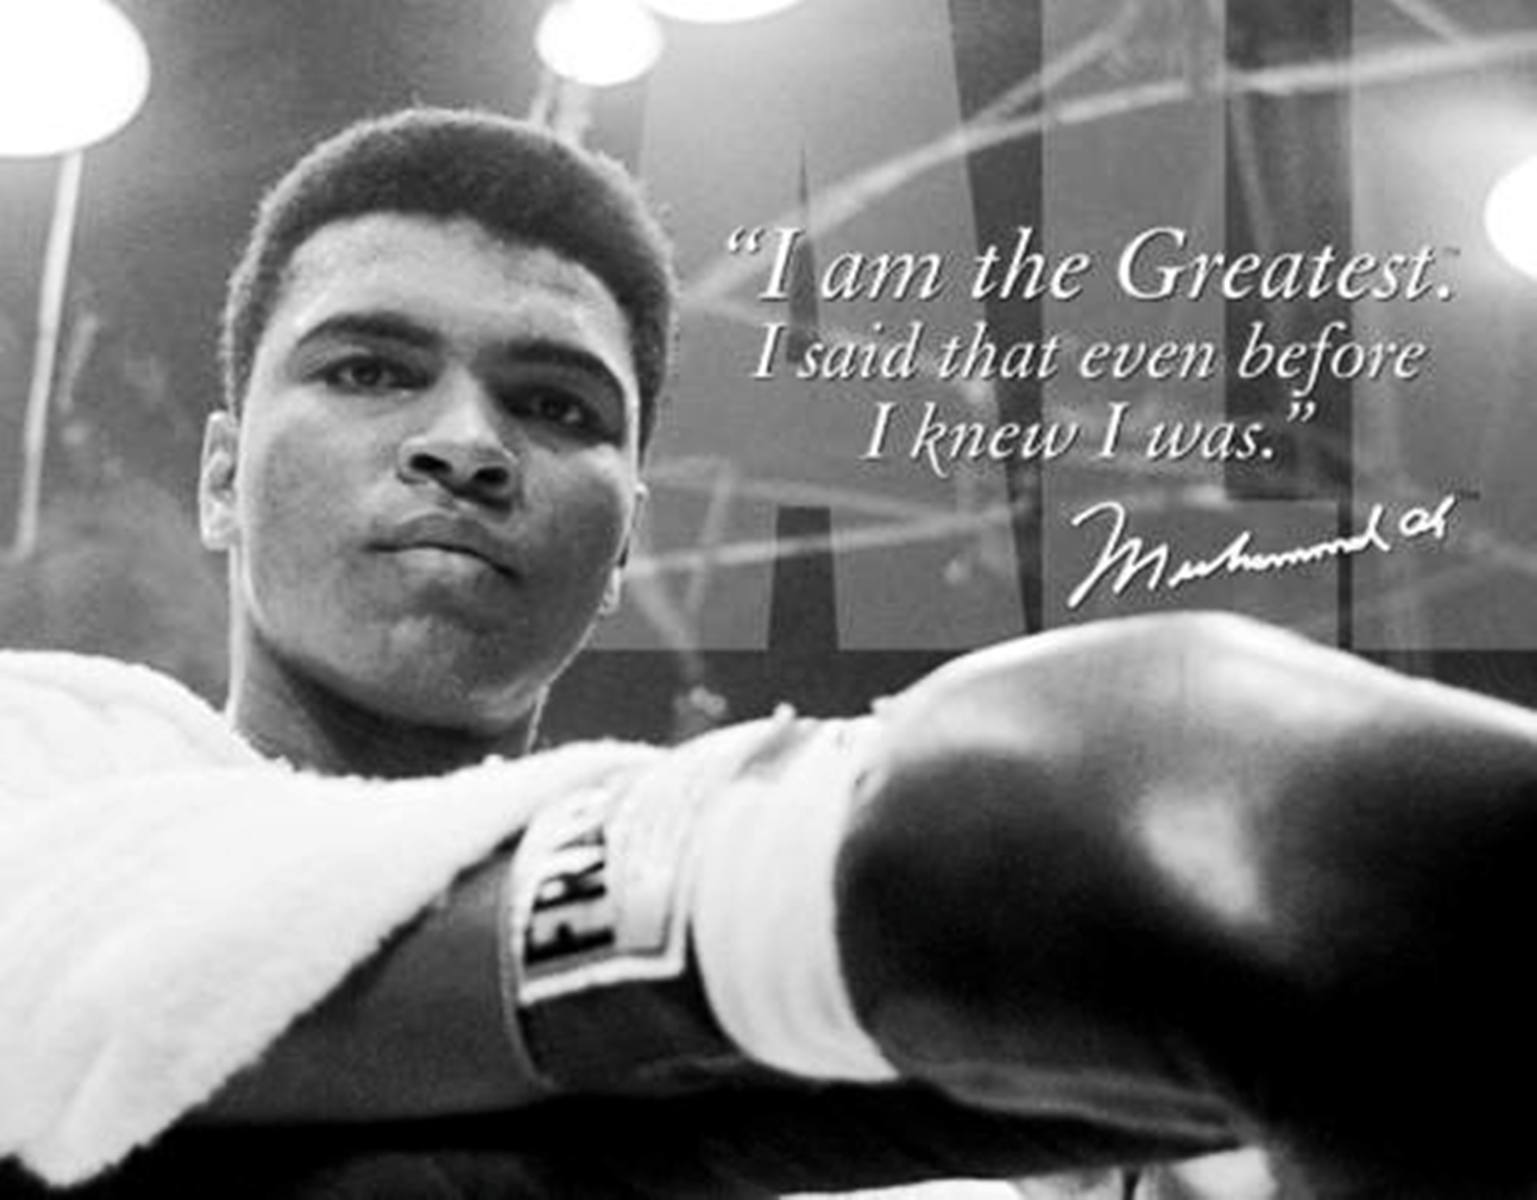 Muhammad-Ali-Quote-Top-10-Rules-For-Success-Greatest-Fights-Evan-Carmichael.jpg